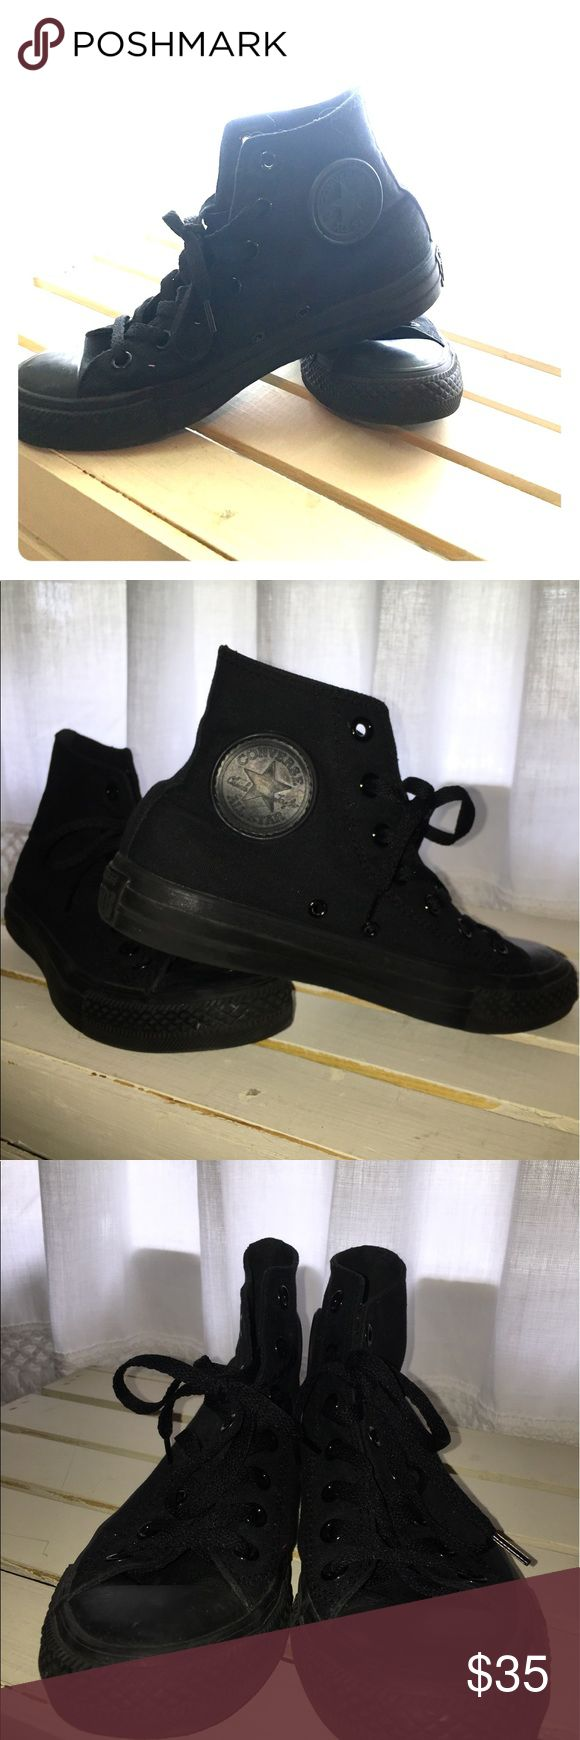 Black high top converse Gently used all black high top converse, no damage or marks. Converse Shoes Sneakers